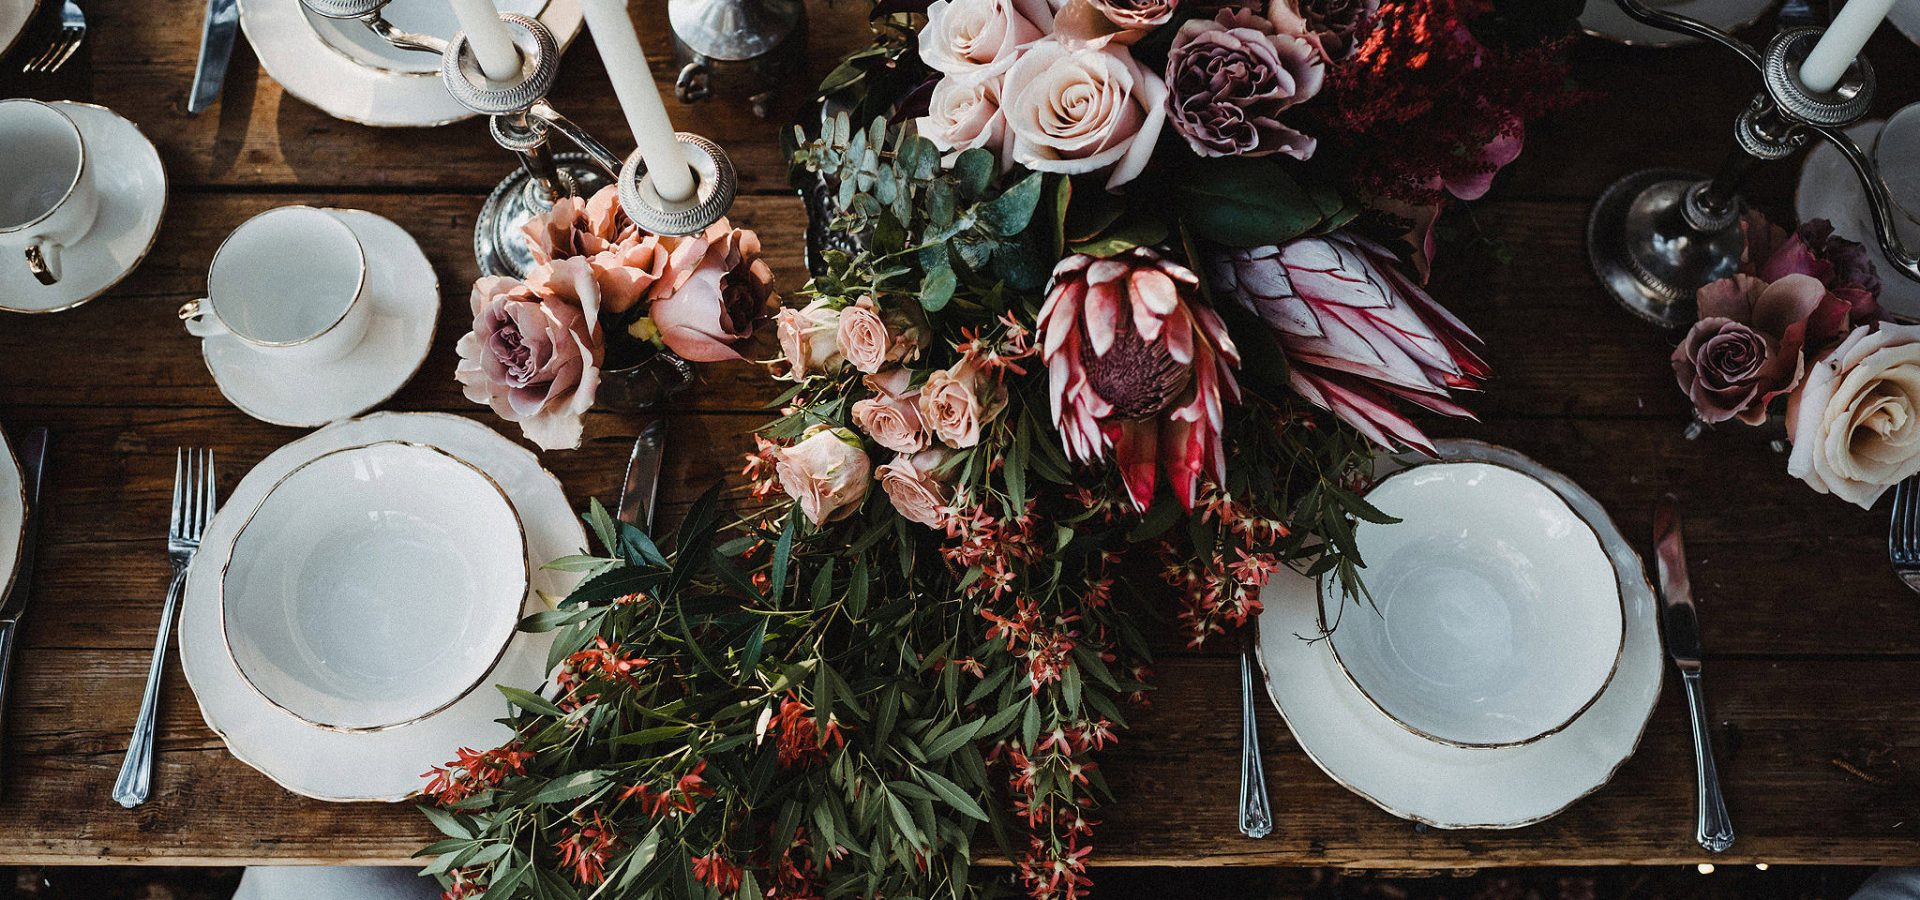 CJ Williams Photography - Touched by Angels Florals